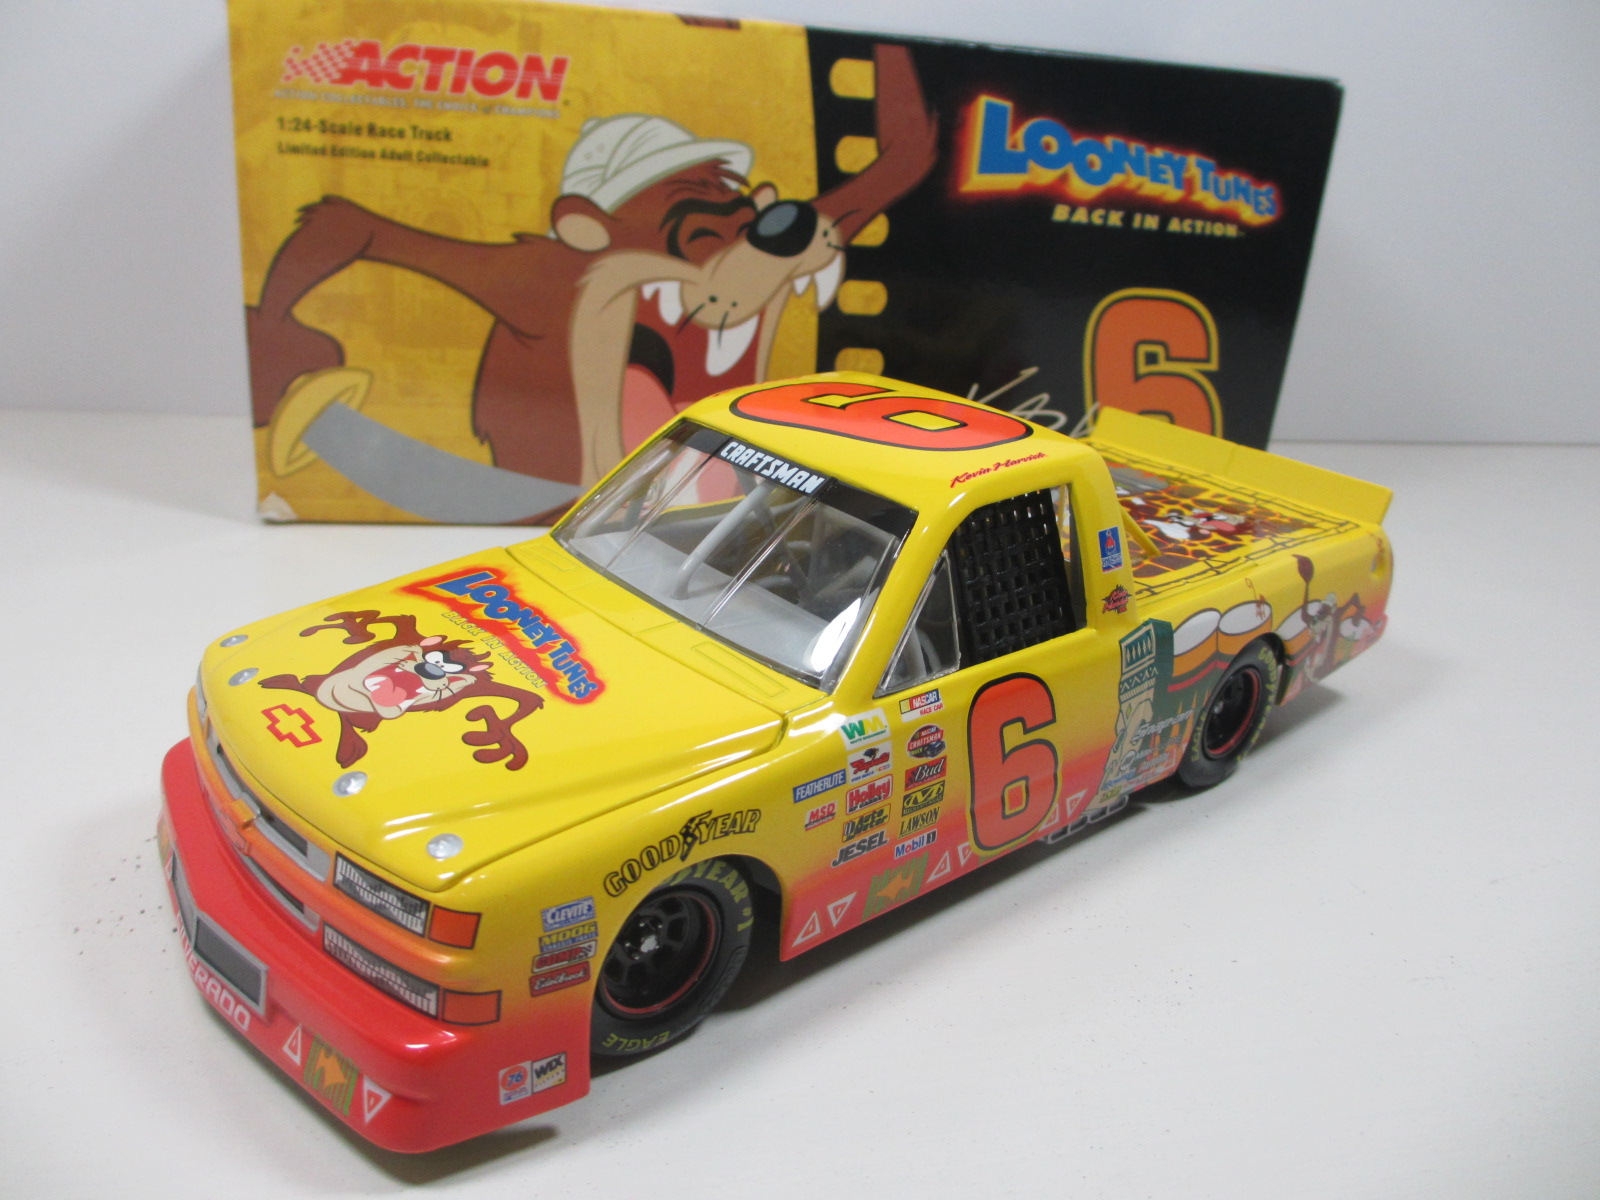 1/24 Action 2003 Kevin Harvick ルーニー・テューンズ TAZ SUPER TRUCK   24-121